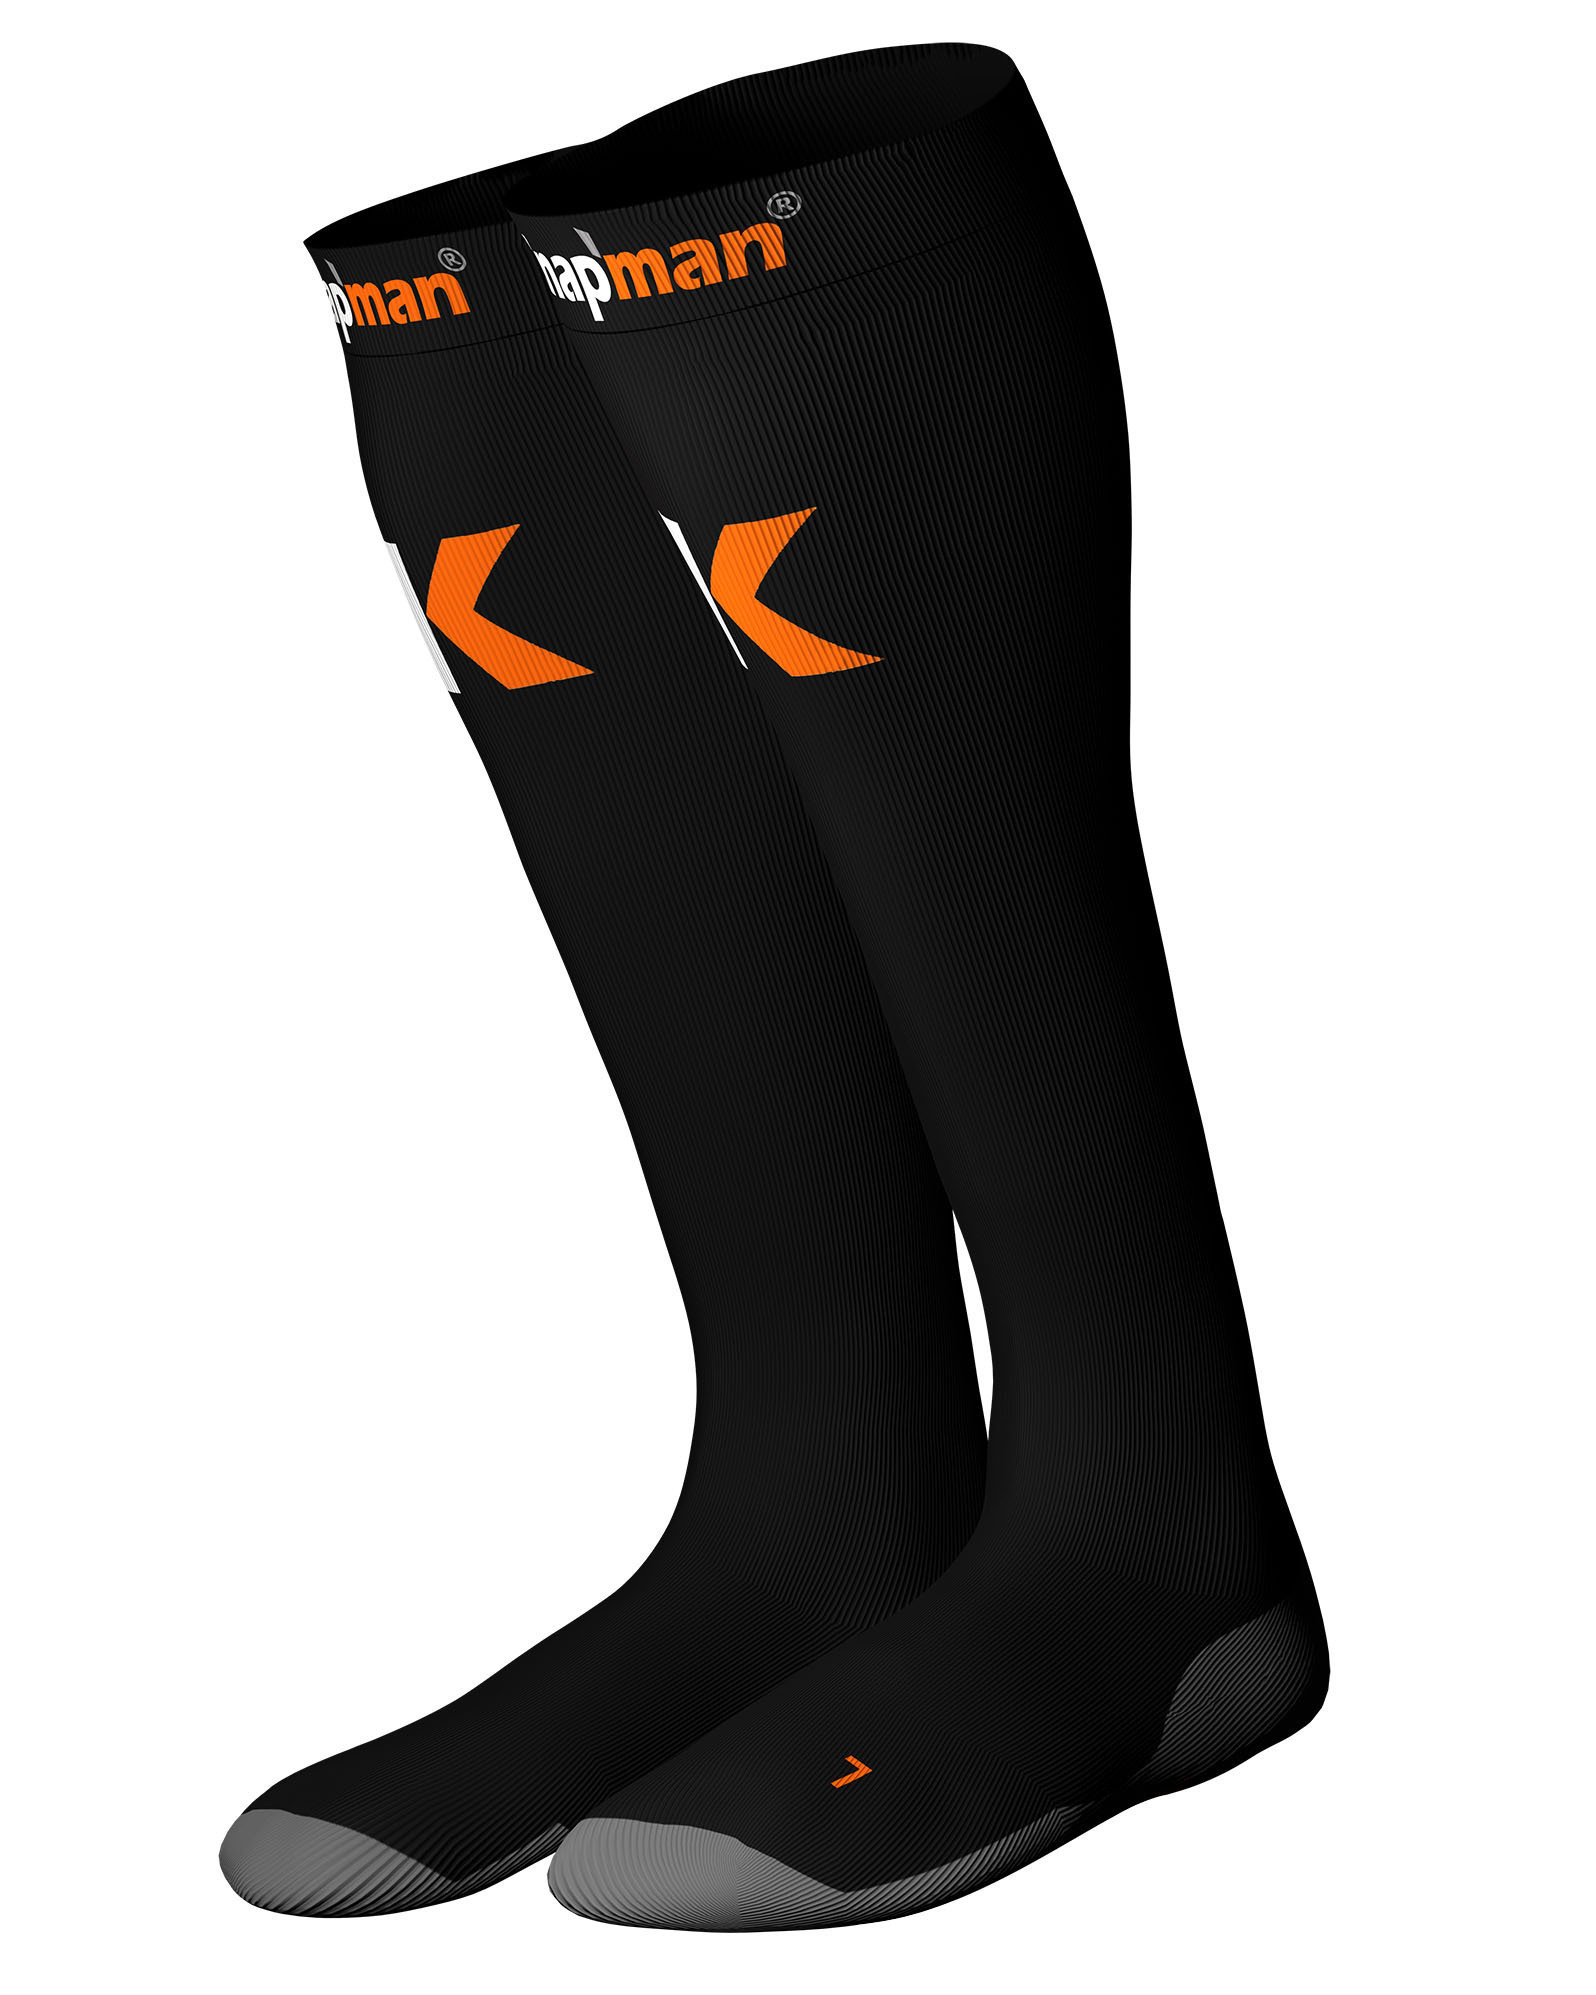 Knap'man Ultra Strong Compression Socks